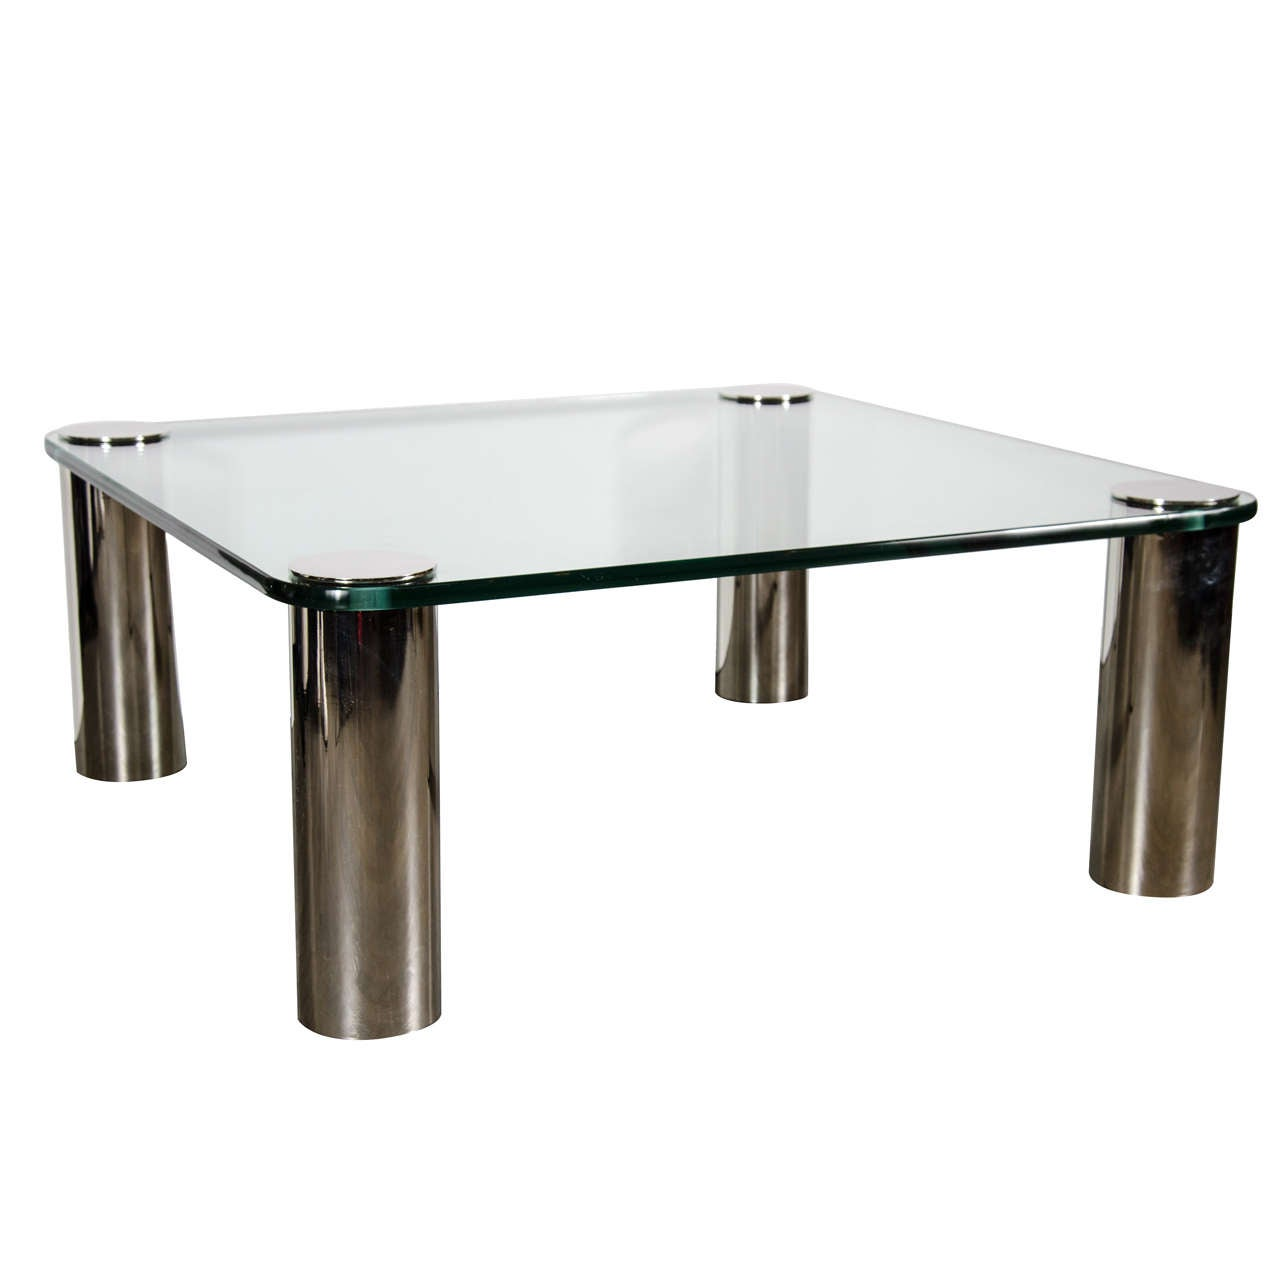 Mid Century Modernist Cocktail Table With Cylindrical Brushed Nickel Legs At 1stdibs